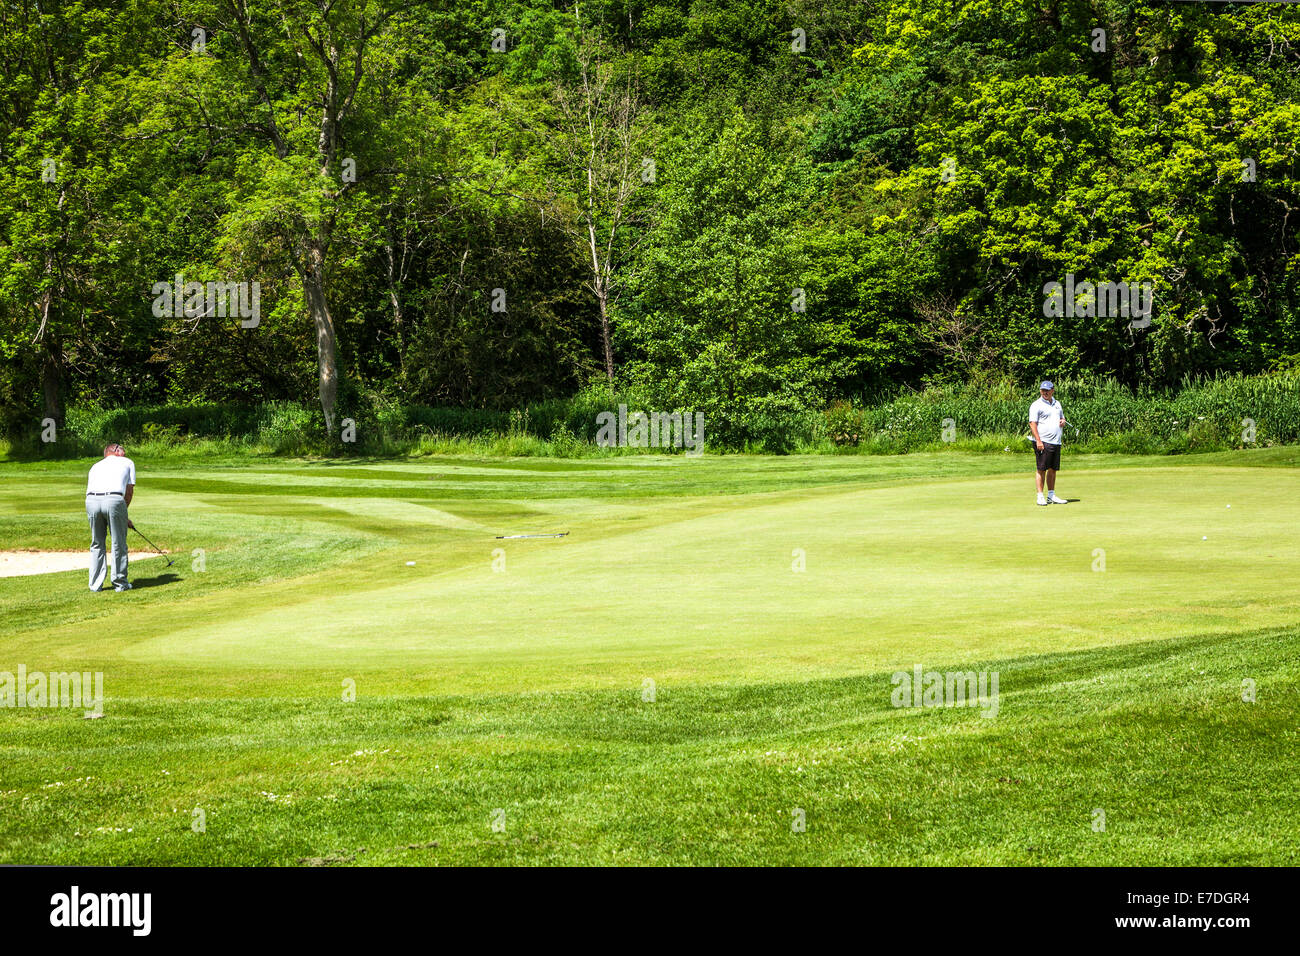 Two golfers playing on a putting green near a hole on a typical English golf course. - Stock Image